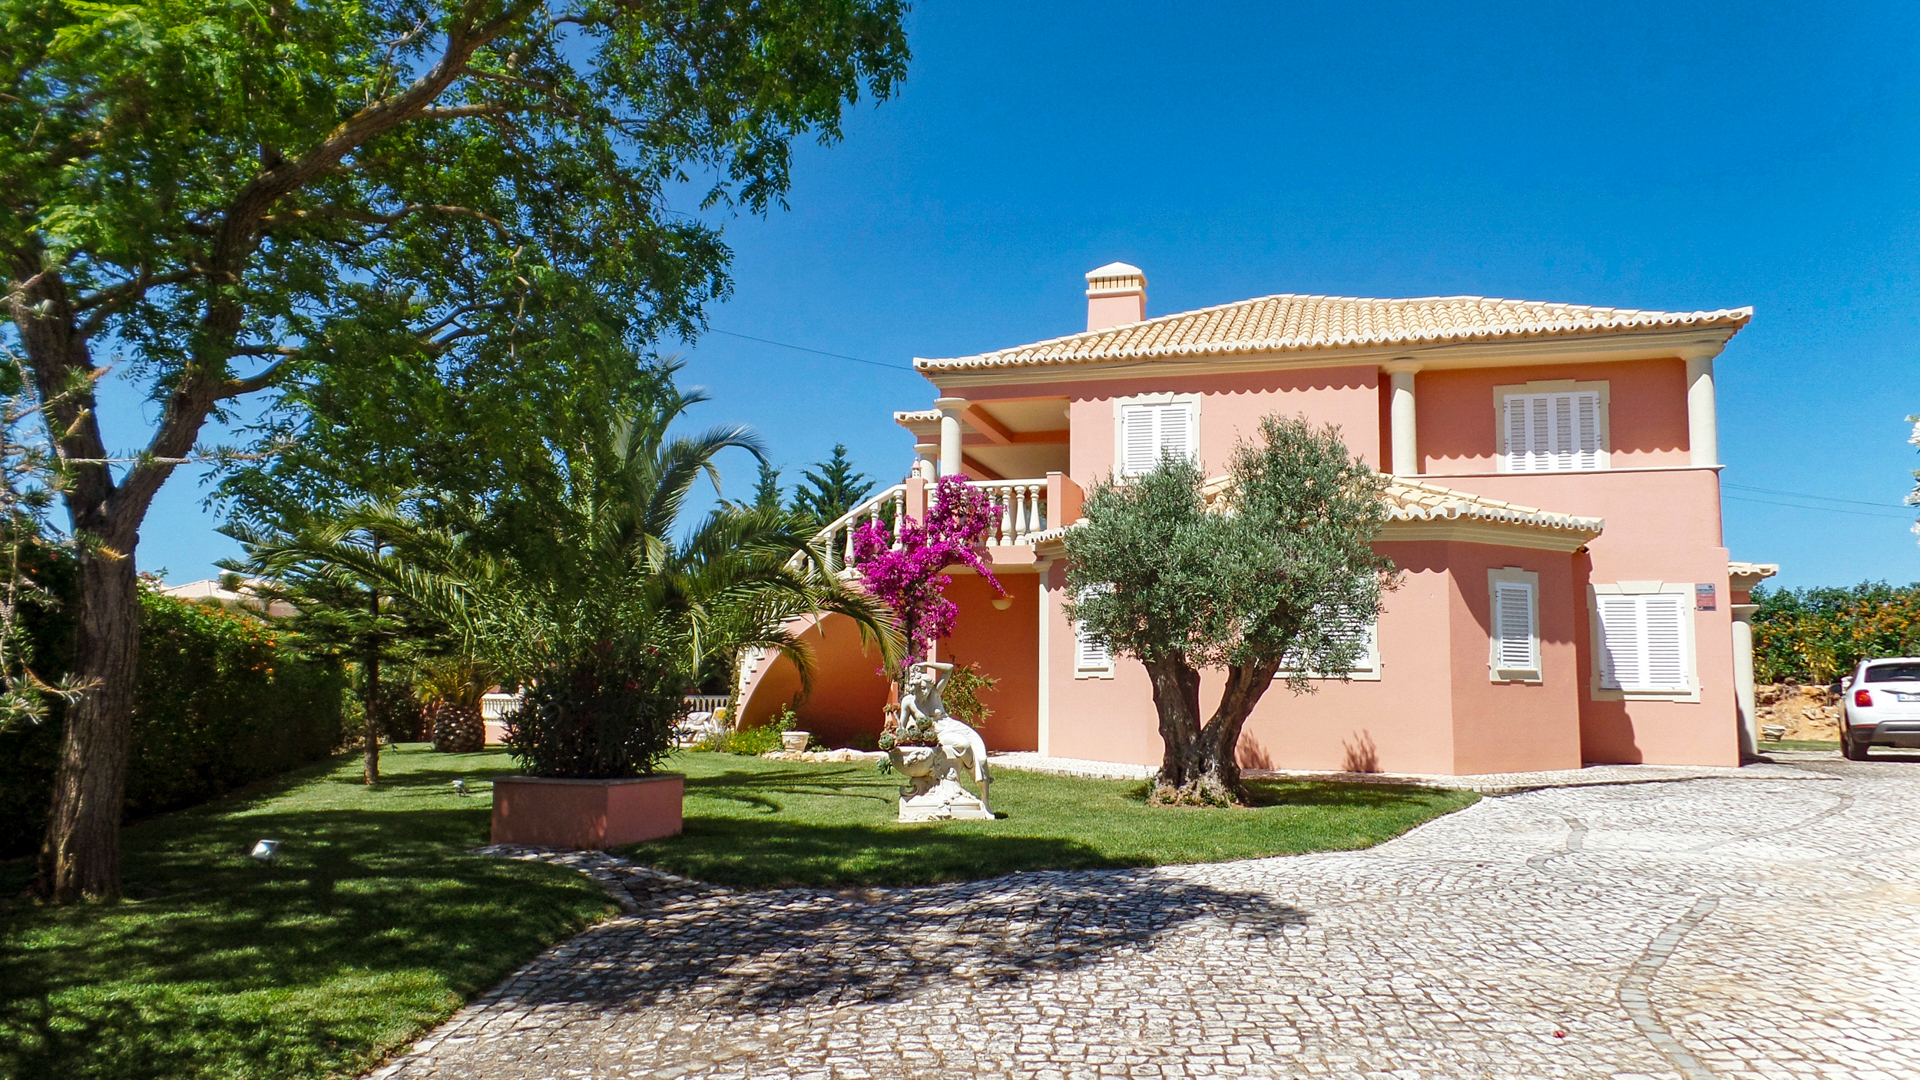 4+1 Bedrooms Luxury Villa with pool, near Porches | VM879 4+1 bedroom villa with pool, close to amenities. The villa is located near Porches and the beach. It has good sized living area and was built with high quality materials. Perfect for permanent living or holidays.